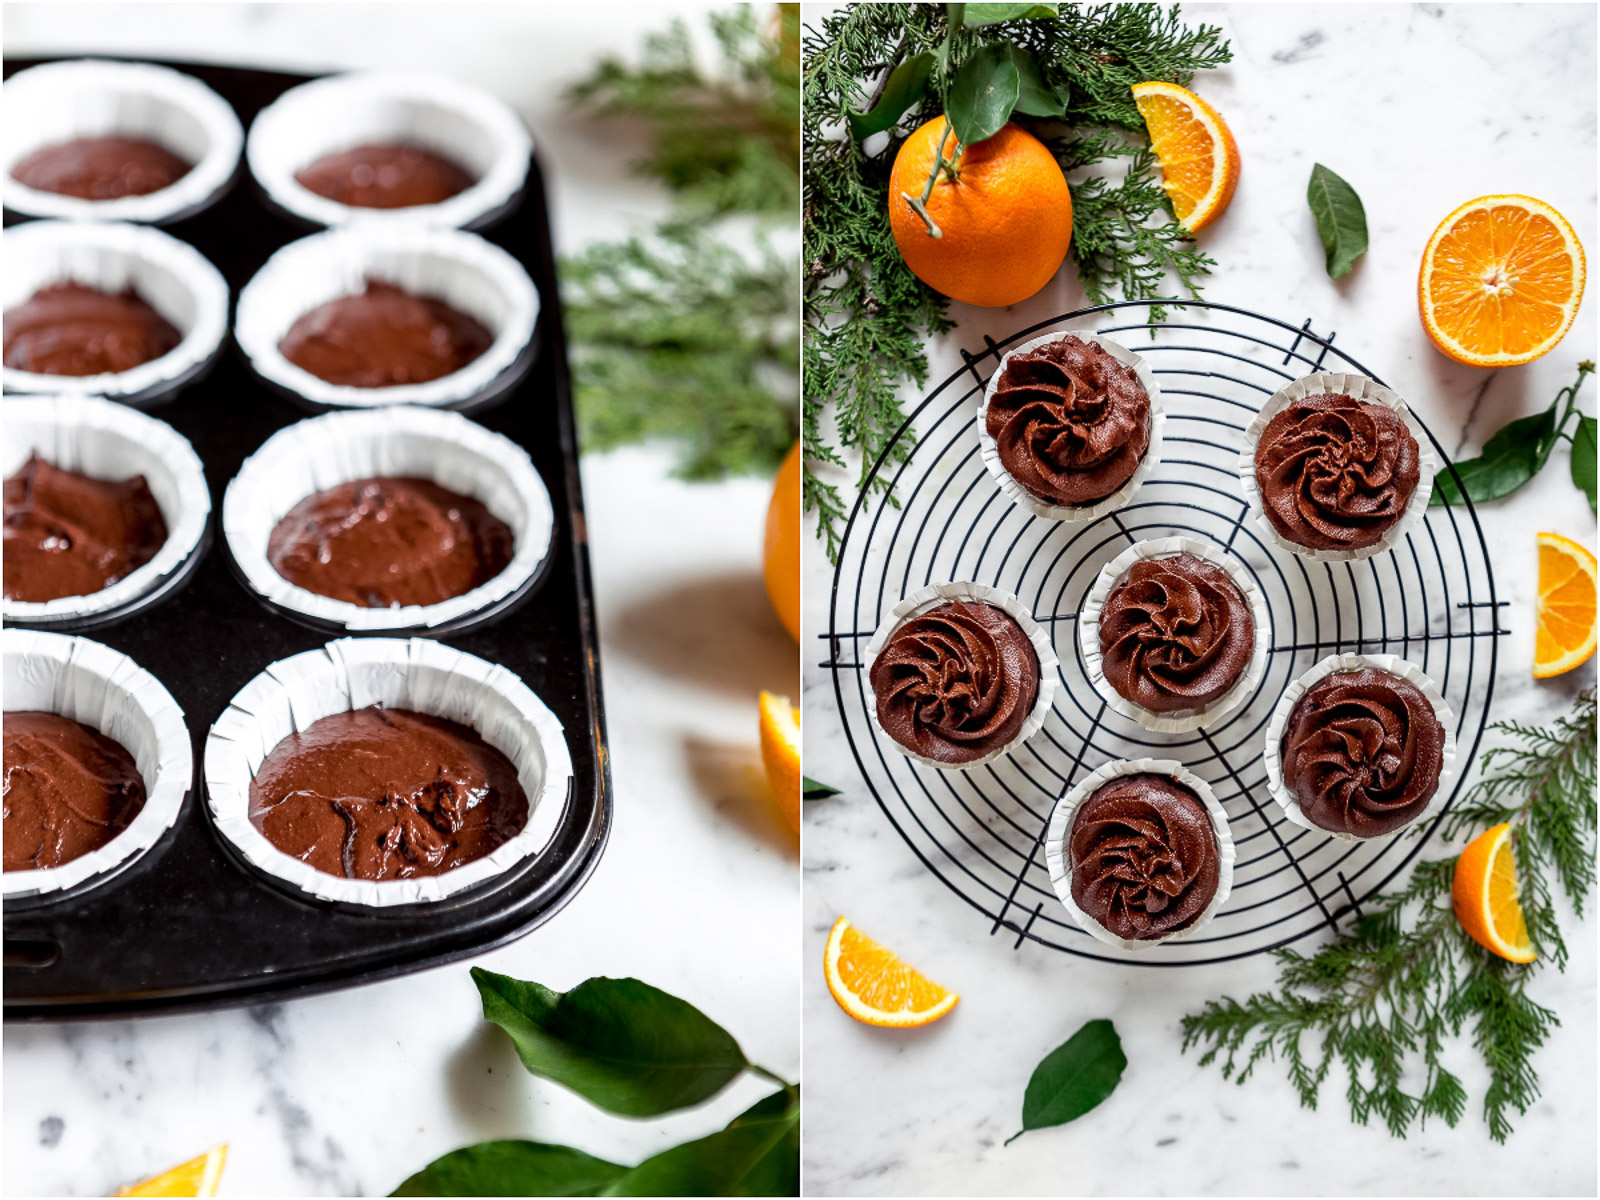 Vegan CHOCOLATE PUMPKIN CUPCAKES with orange DATE CHOCOLATE Frosting CUPCAKES VEGAN al CIOCCOLATO ARANCIA e ZUCCA con mousse al cioccolato datteri e zucca